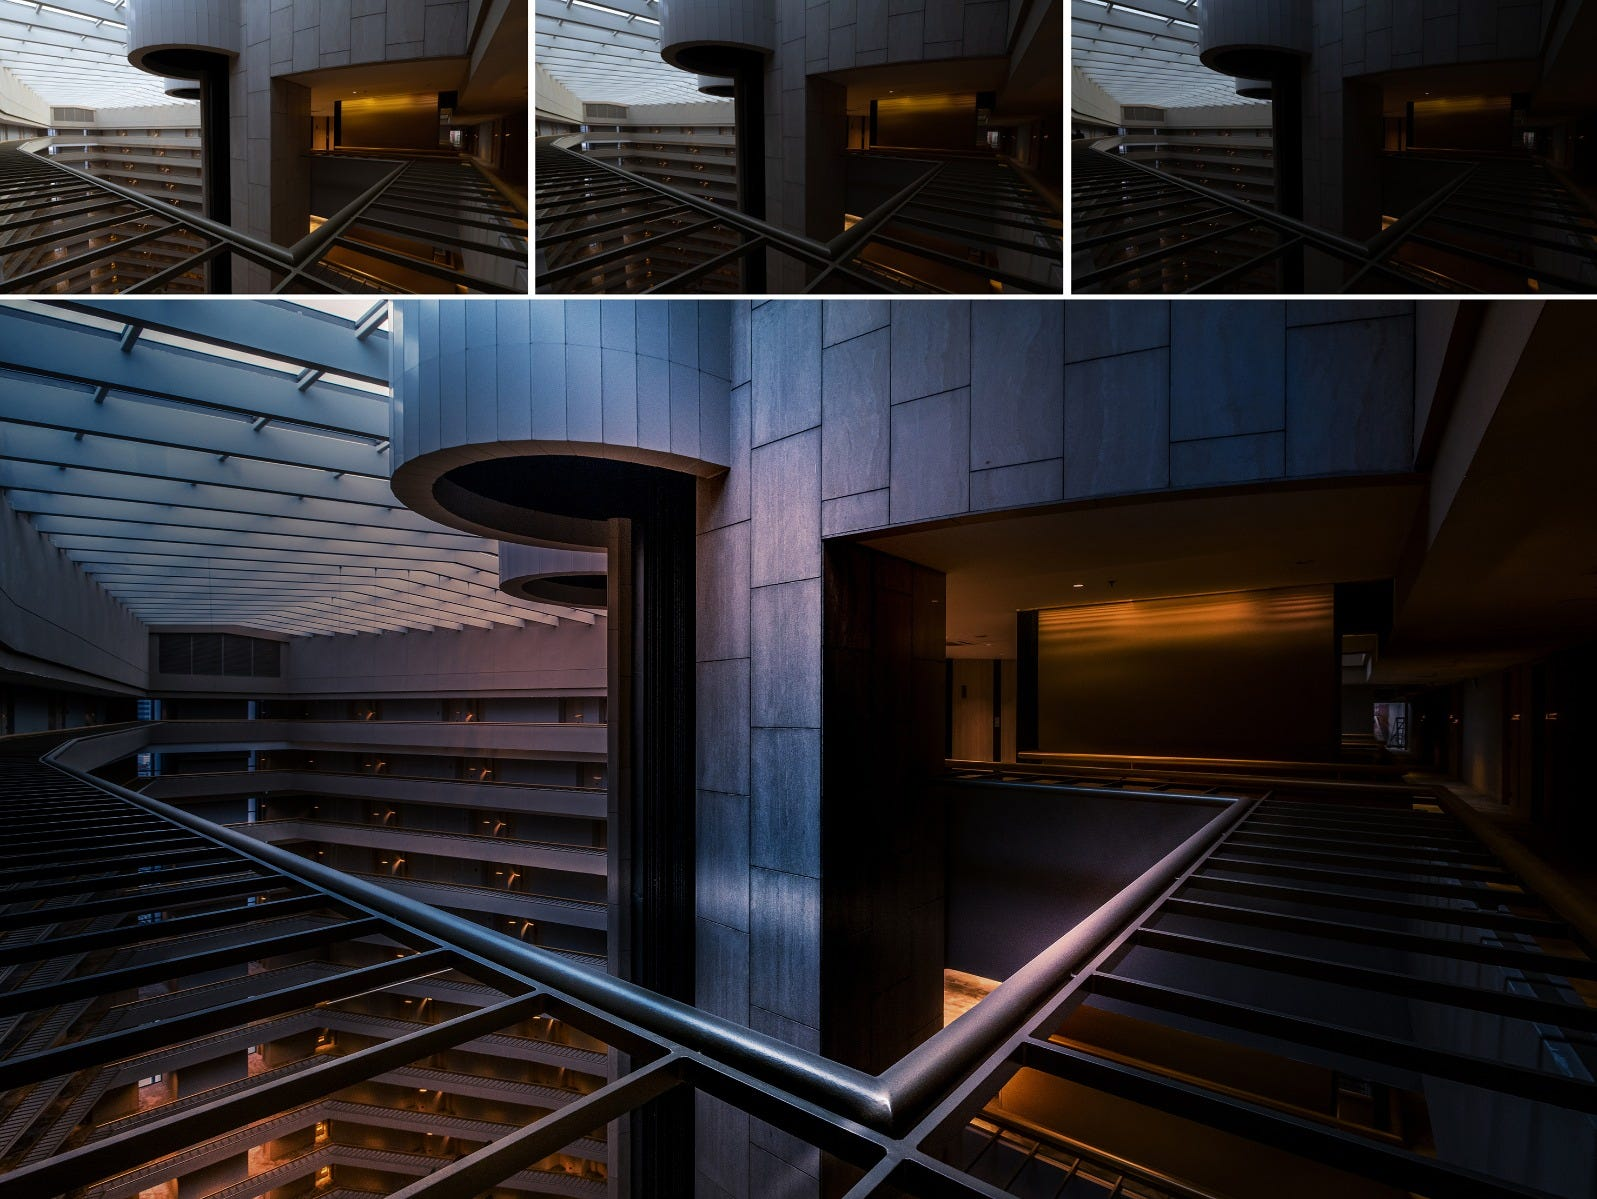 3 differently exposed shots of Park Royal Pickering interior composited into one final photo